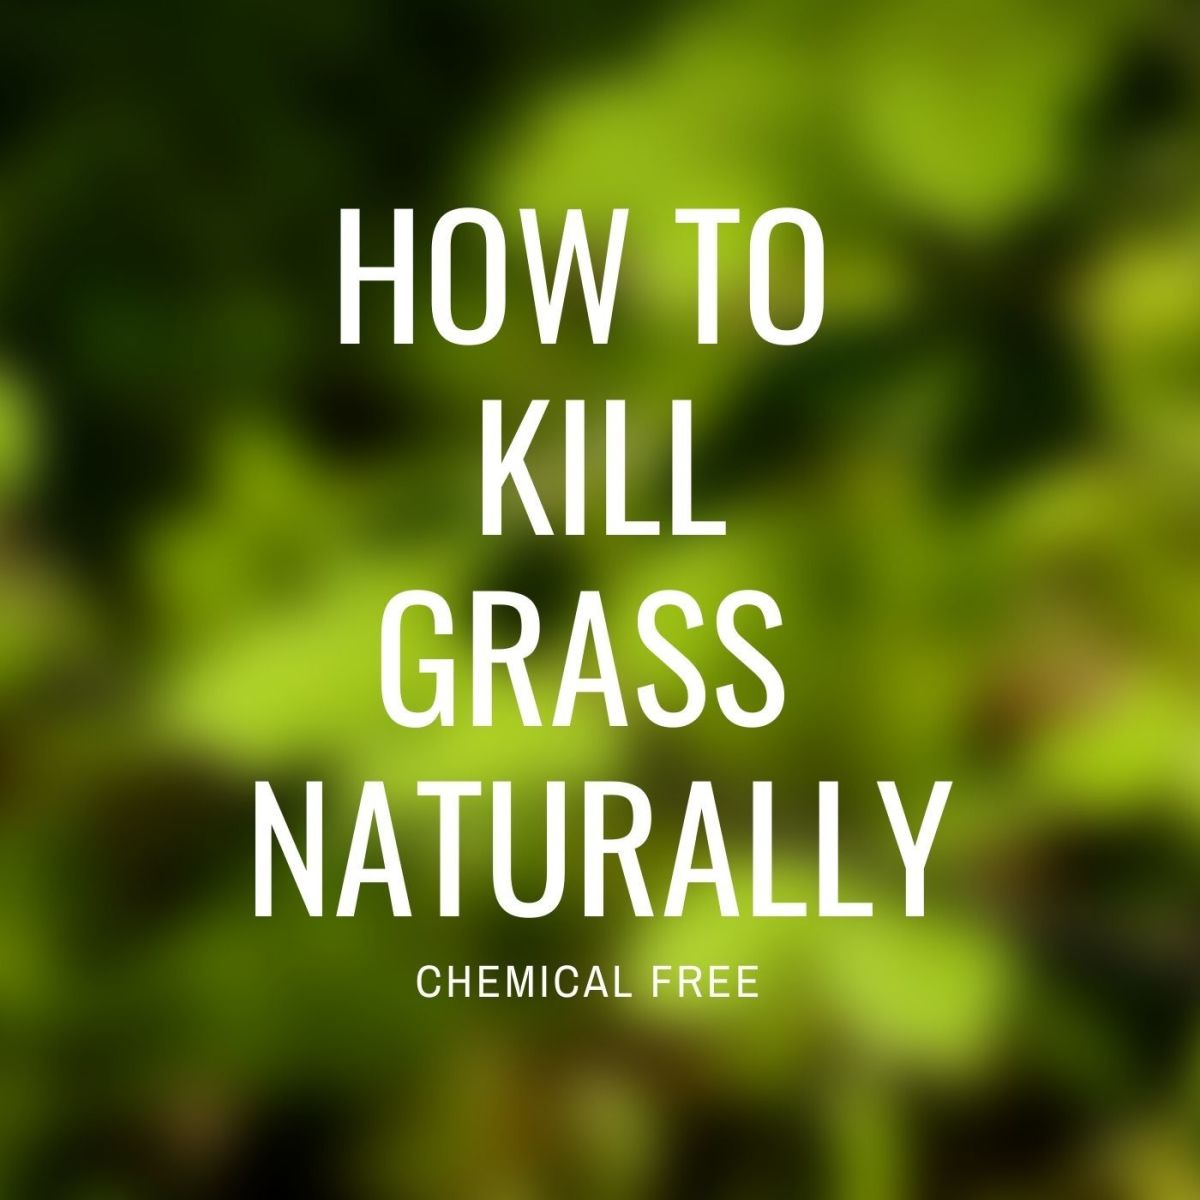 You can kill grass without harsh chemicals!